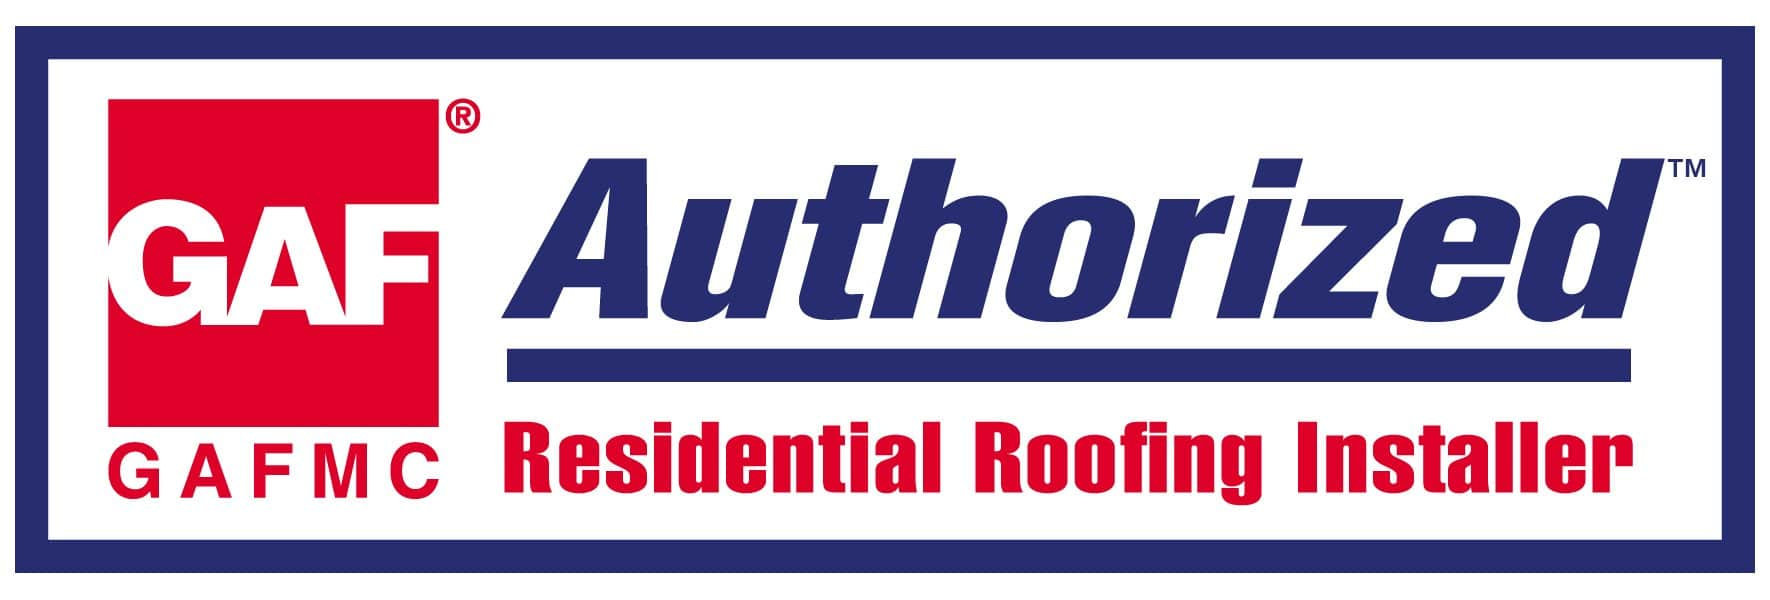 GAF-LOG-Authorized-Residential-Roofing-Installer